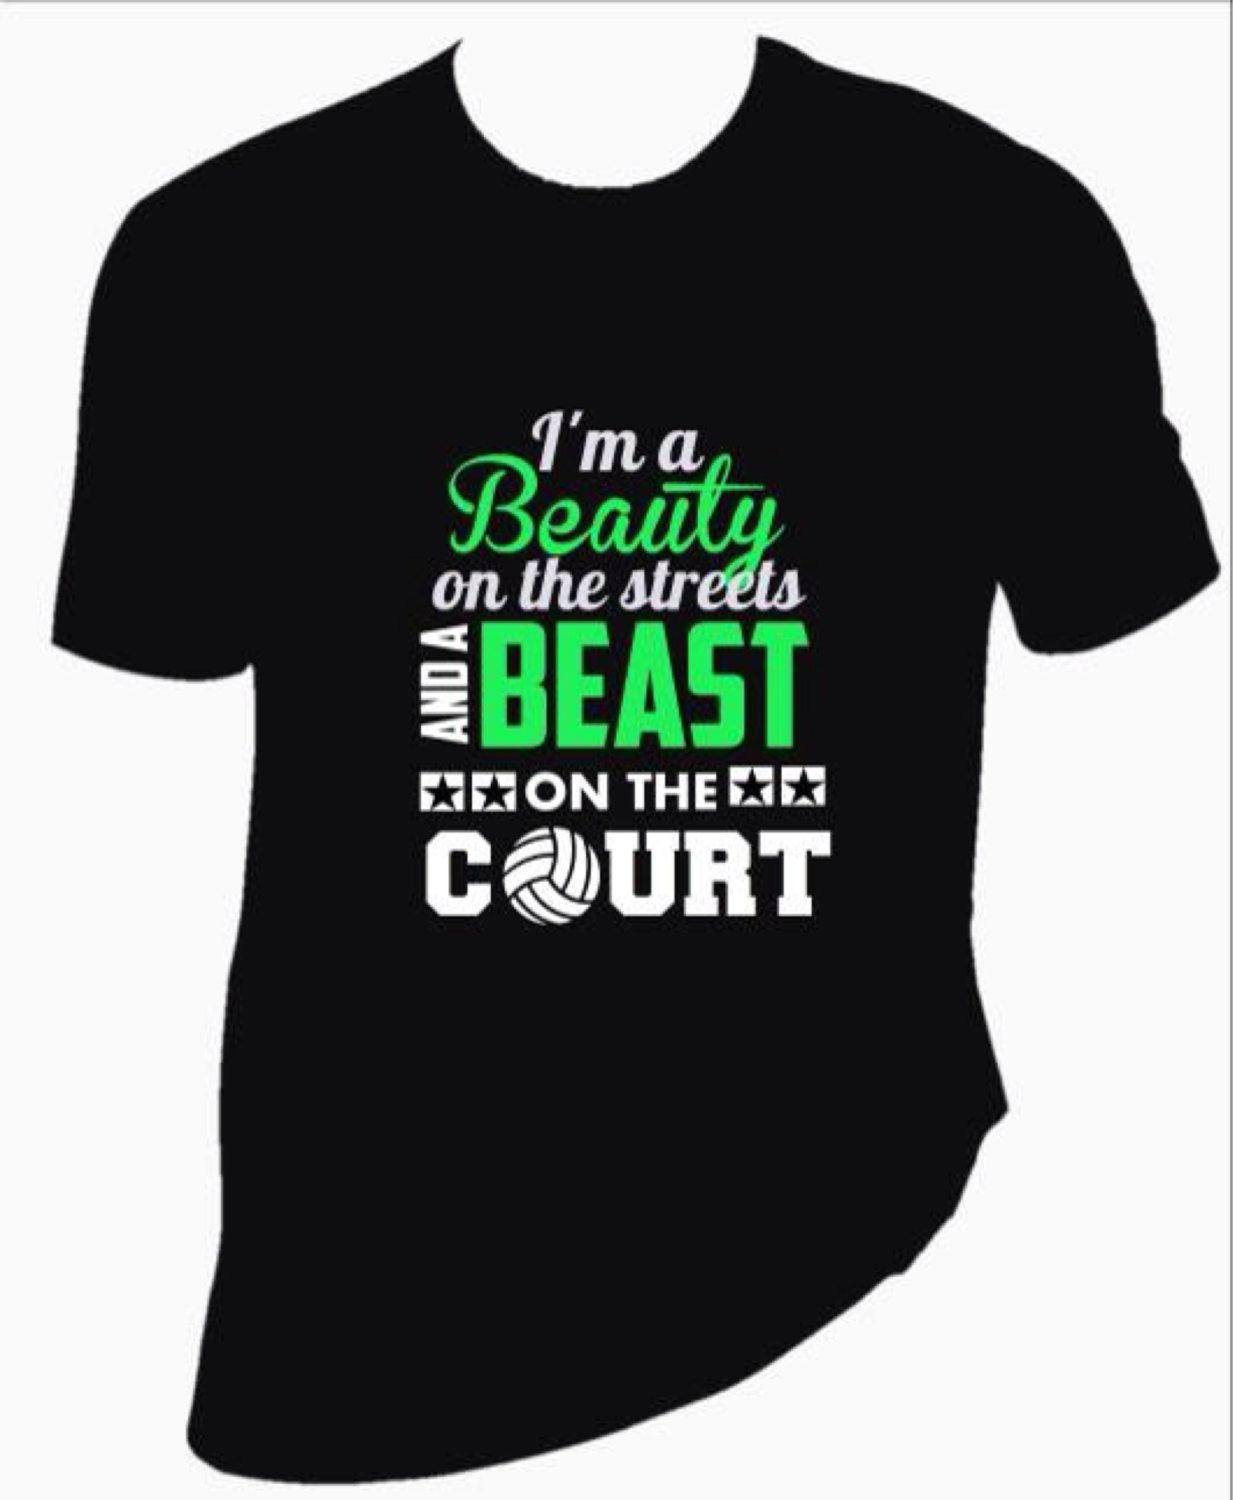 T shirt design volleyball - Custom Volleyball Shirt Look Like A Beauty Play Like A Beast Custom Designs Personalized Fast Delivery